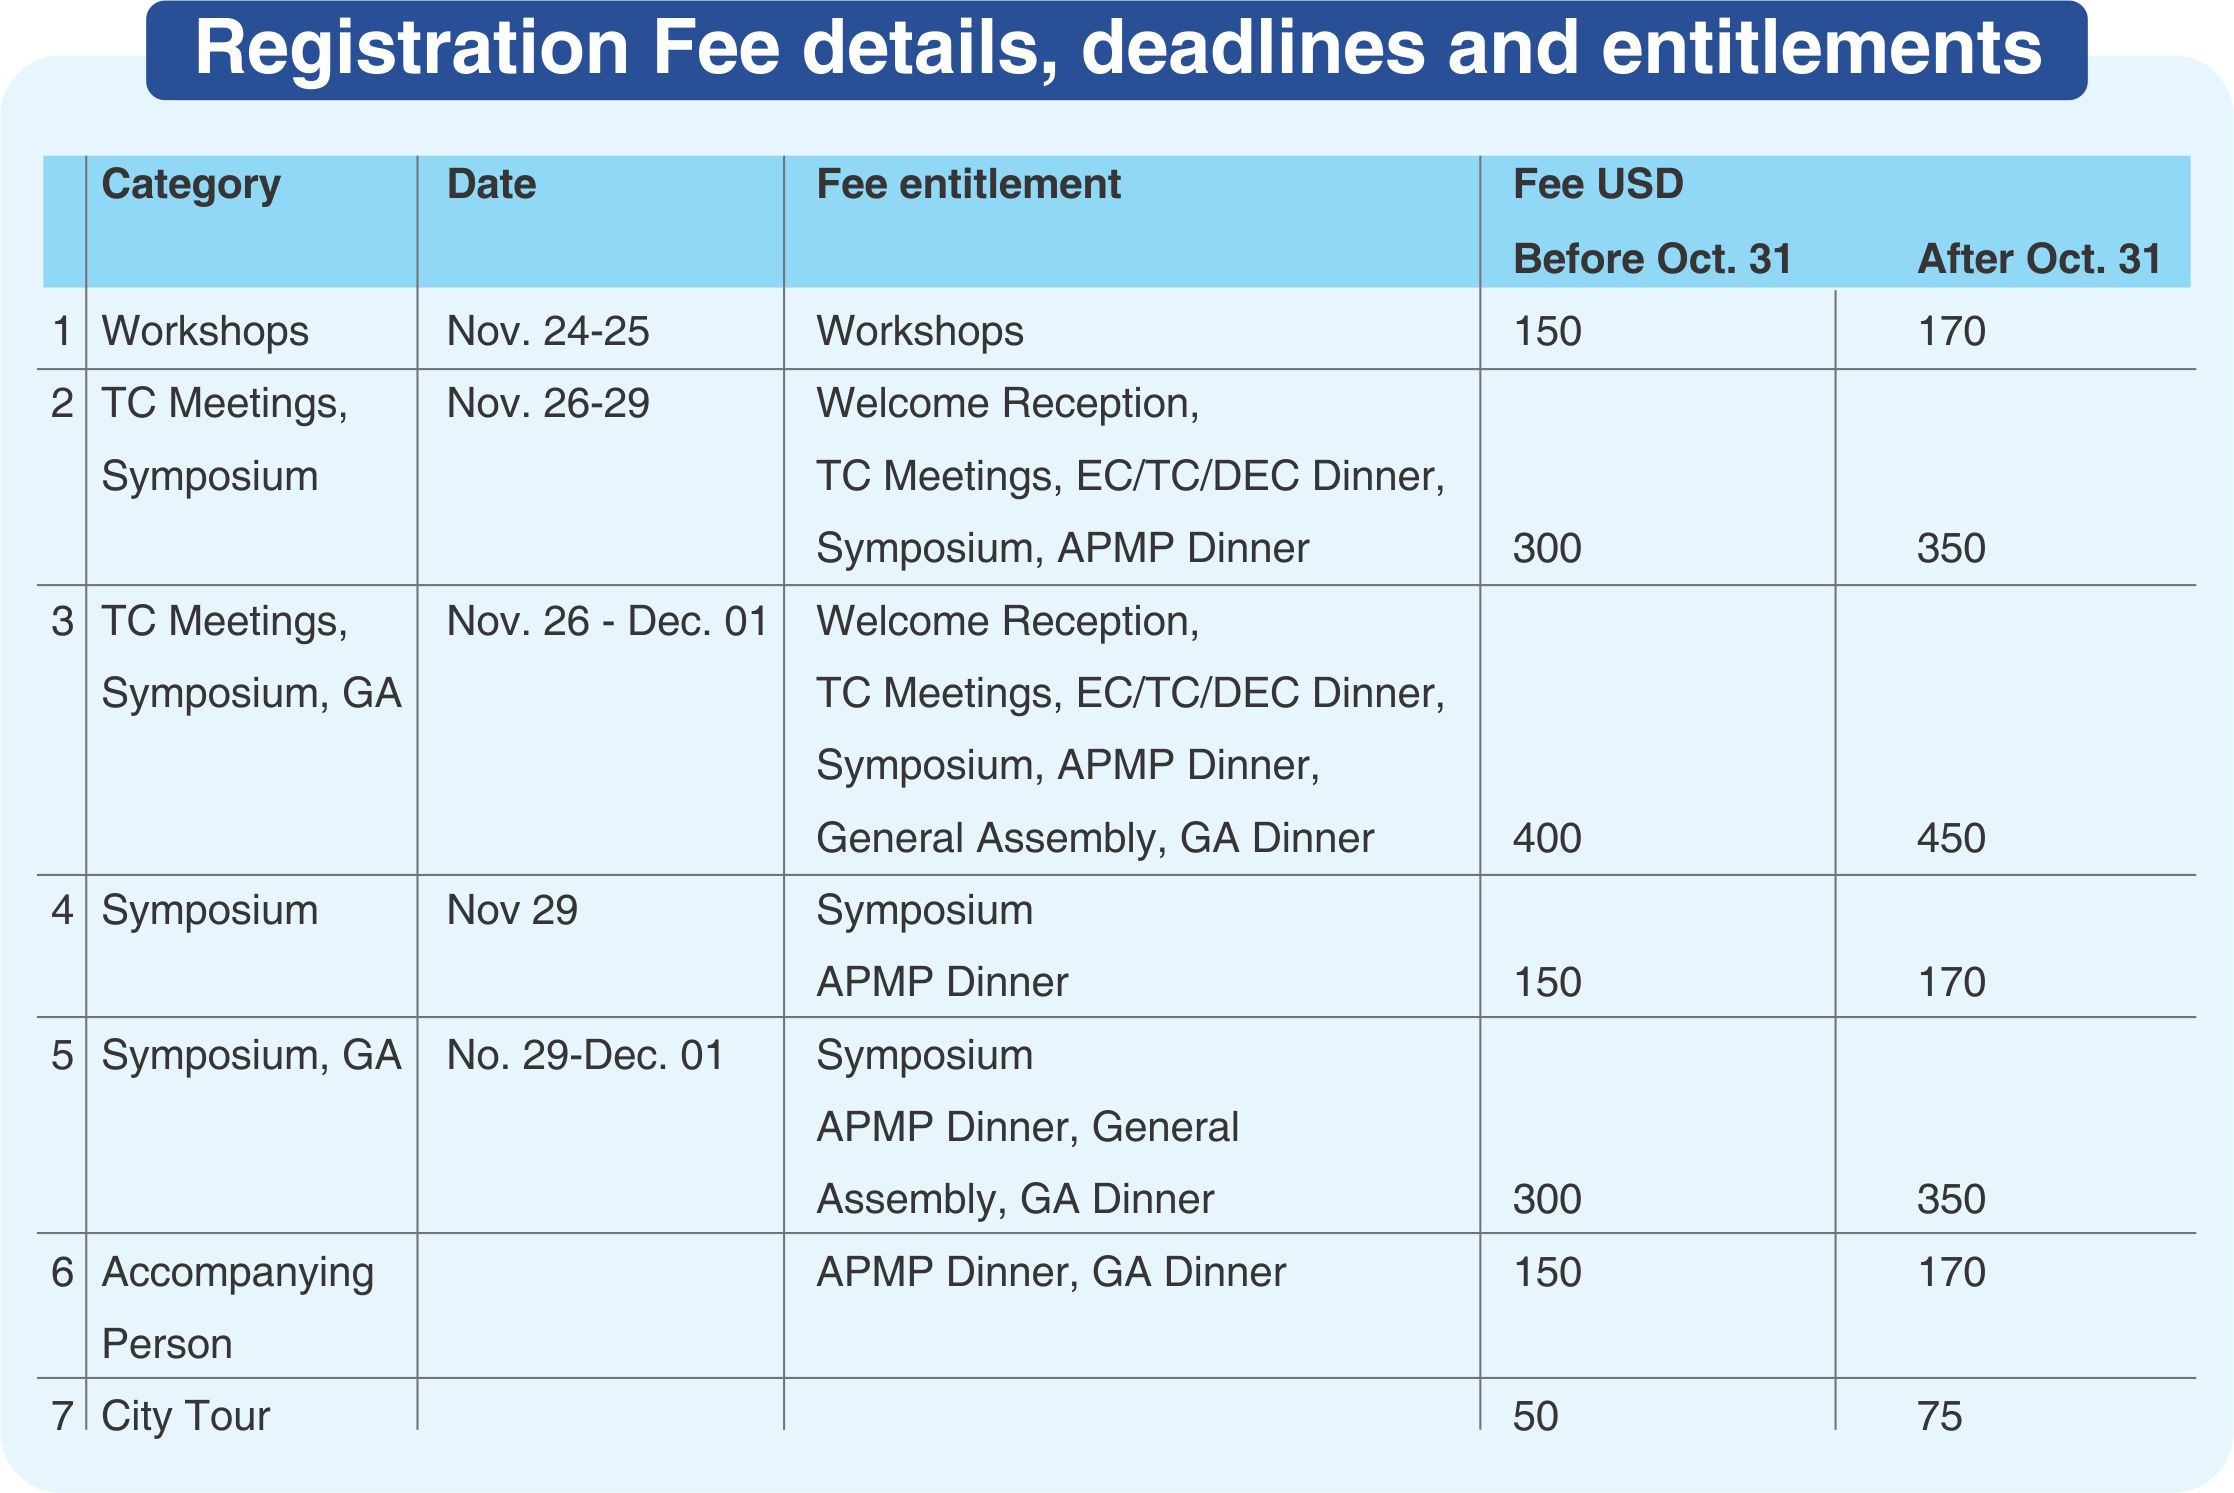 Registration Fee - New